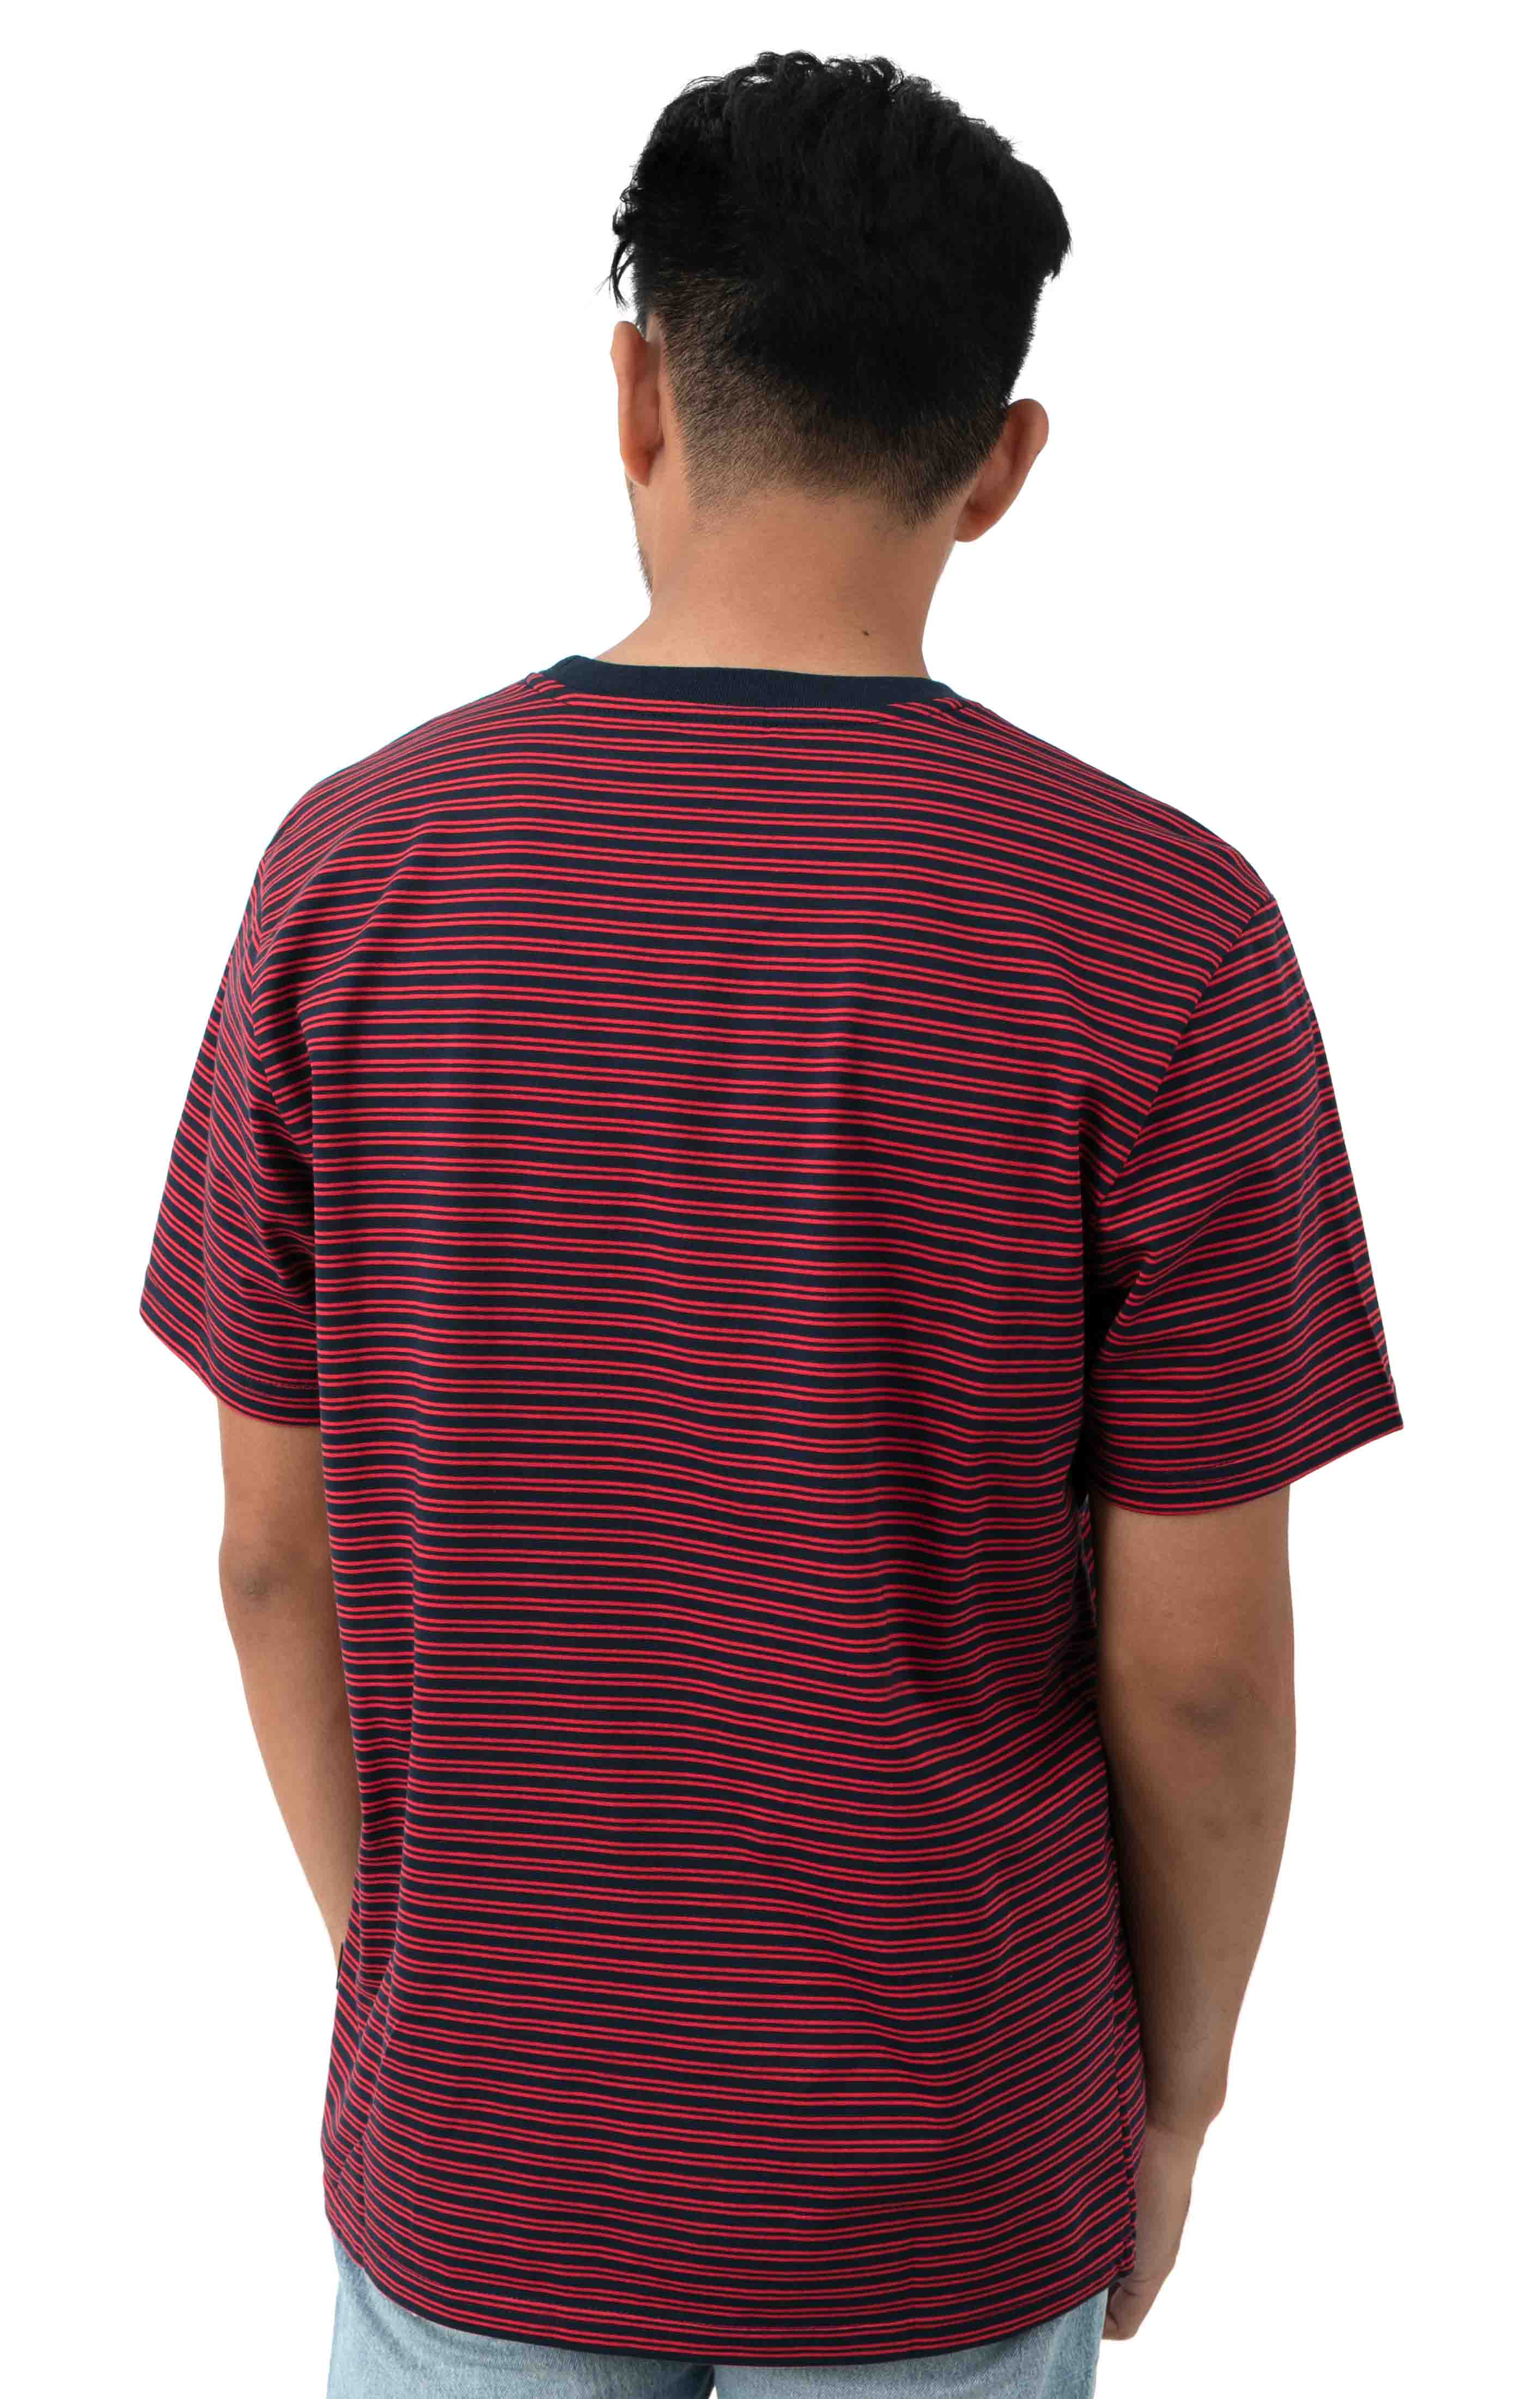 Molly Striped T-Shirt - True Red 3